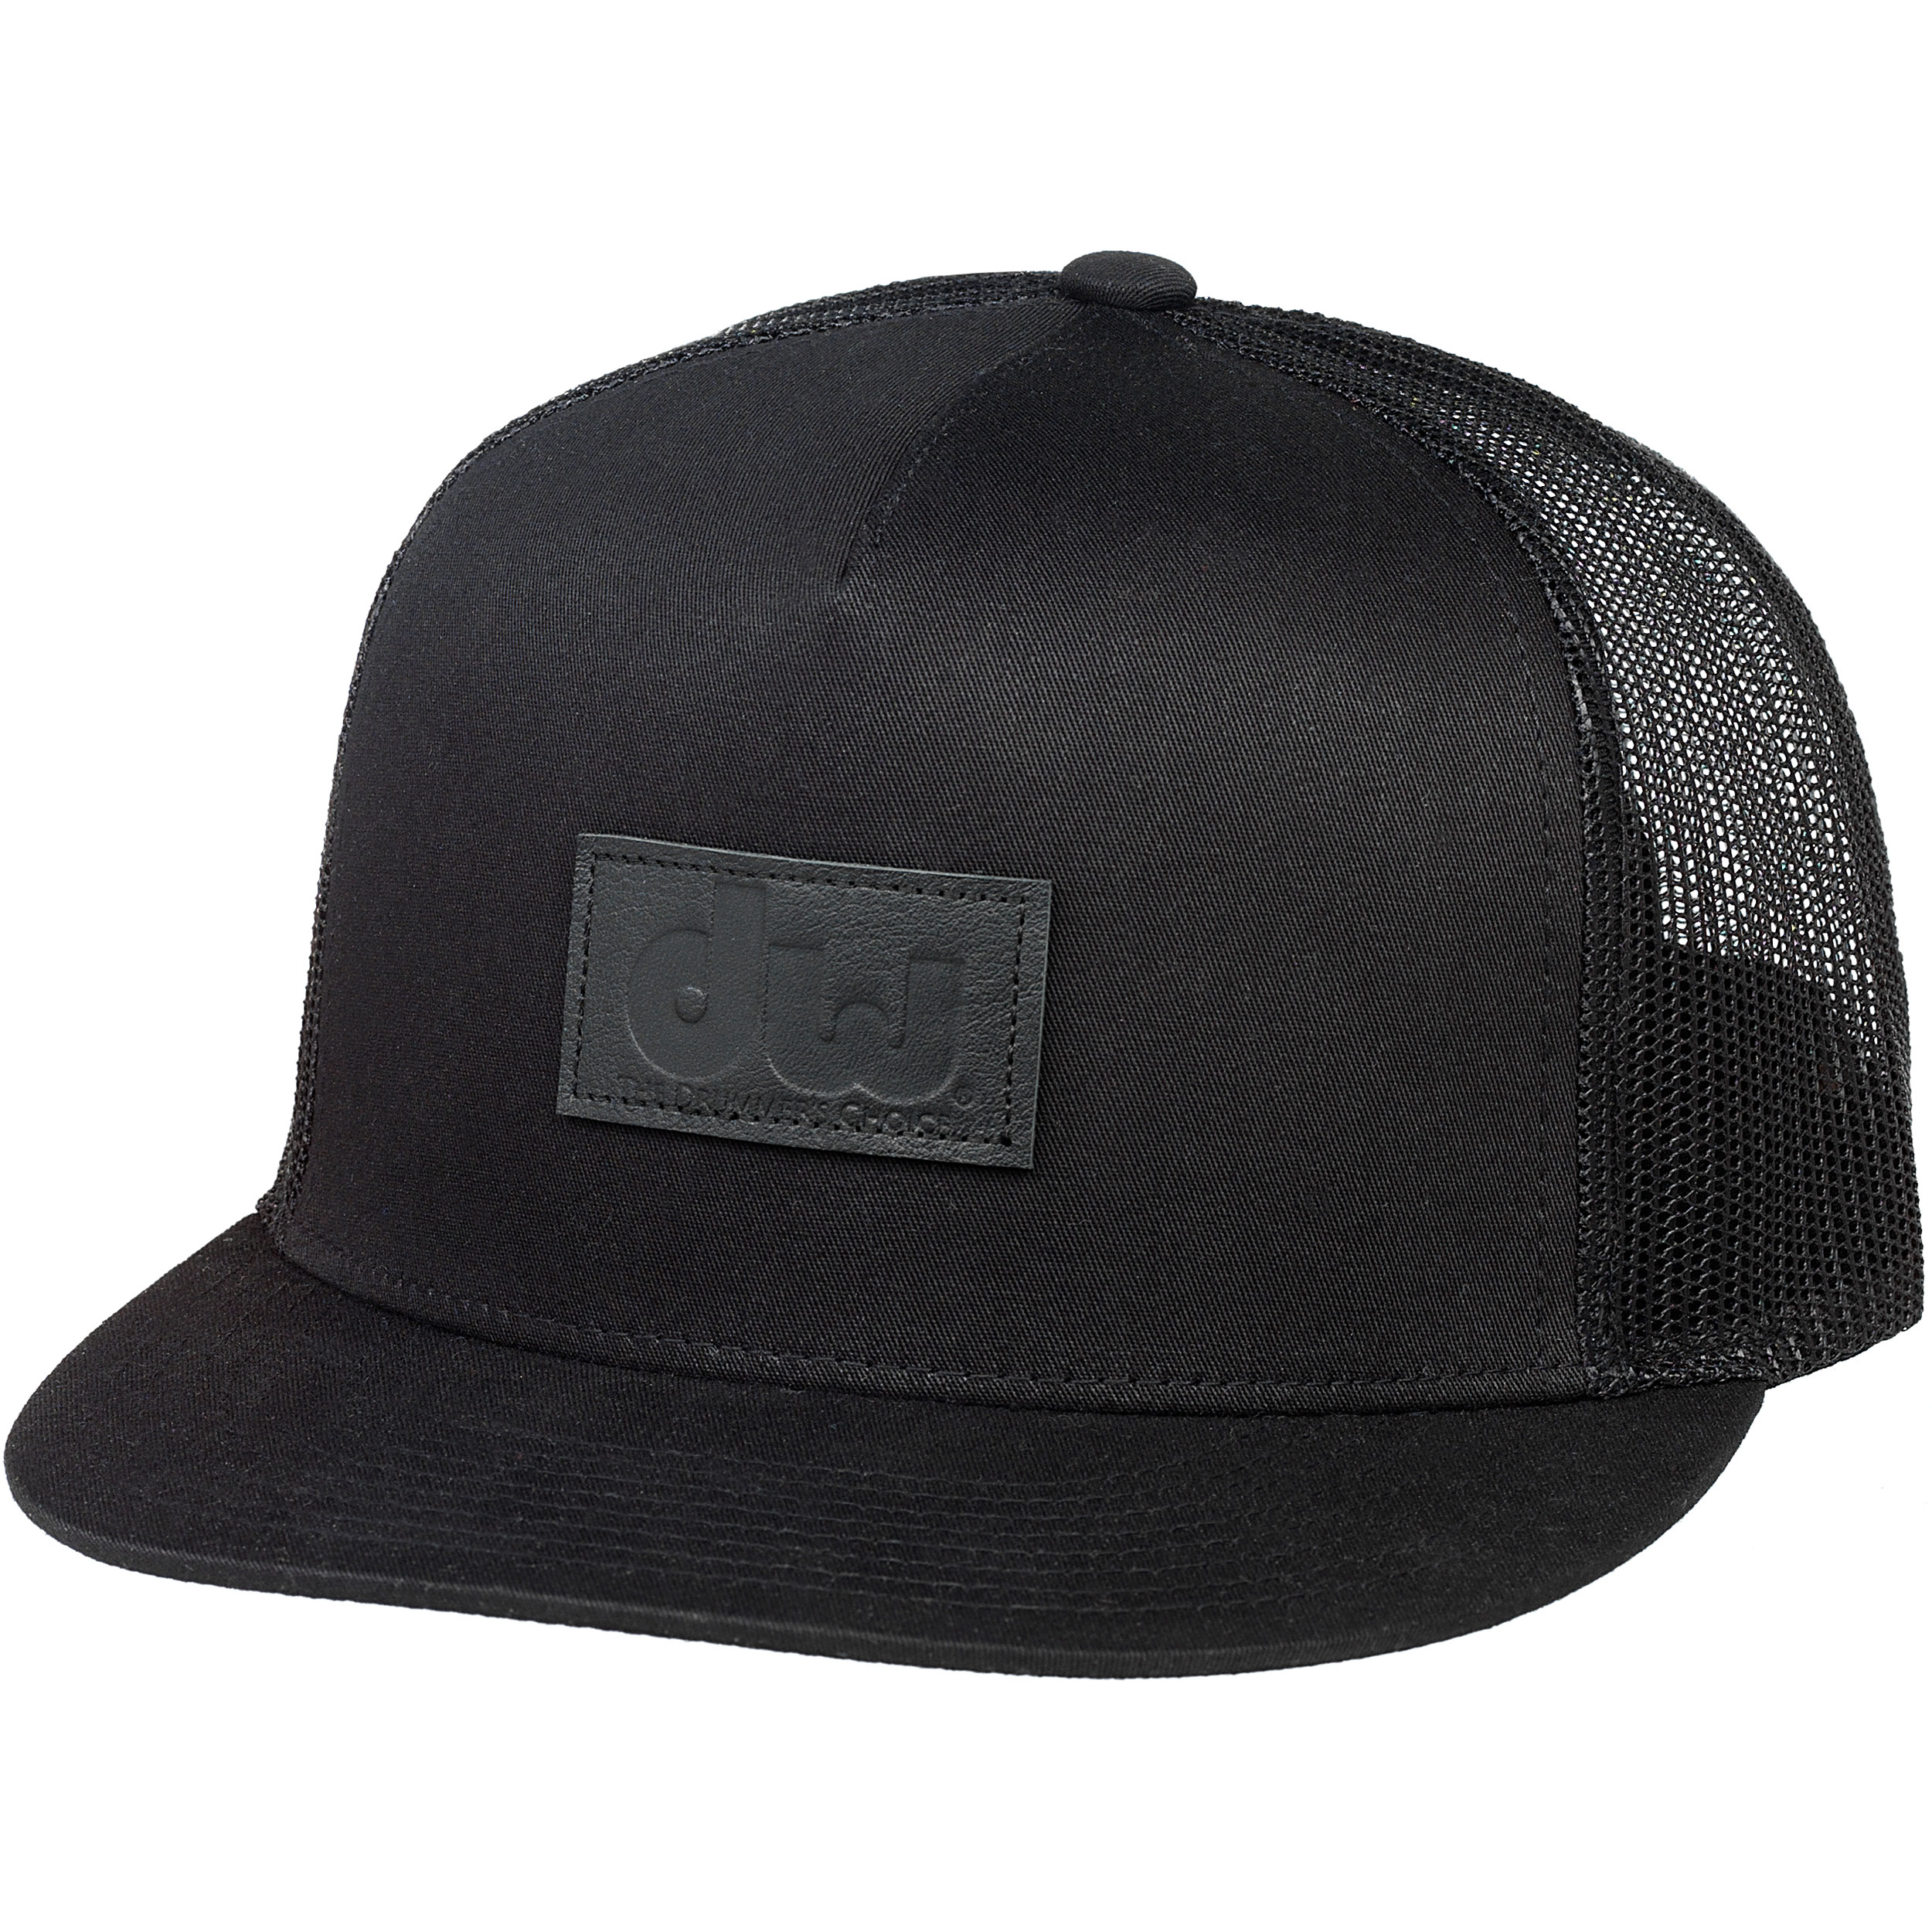 DW Black Trucker Cap with Leather Patch Logo